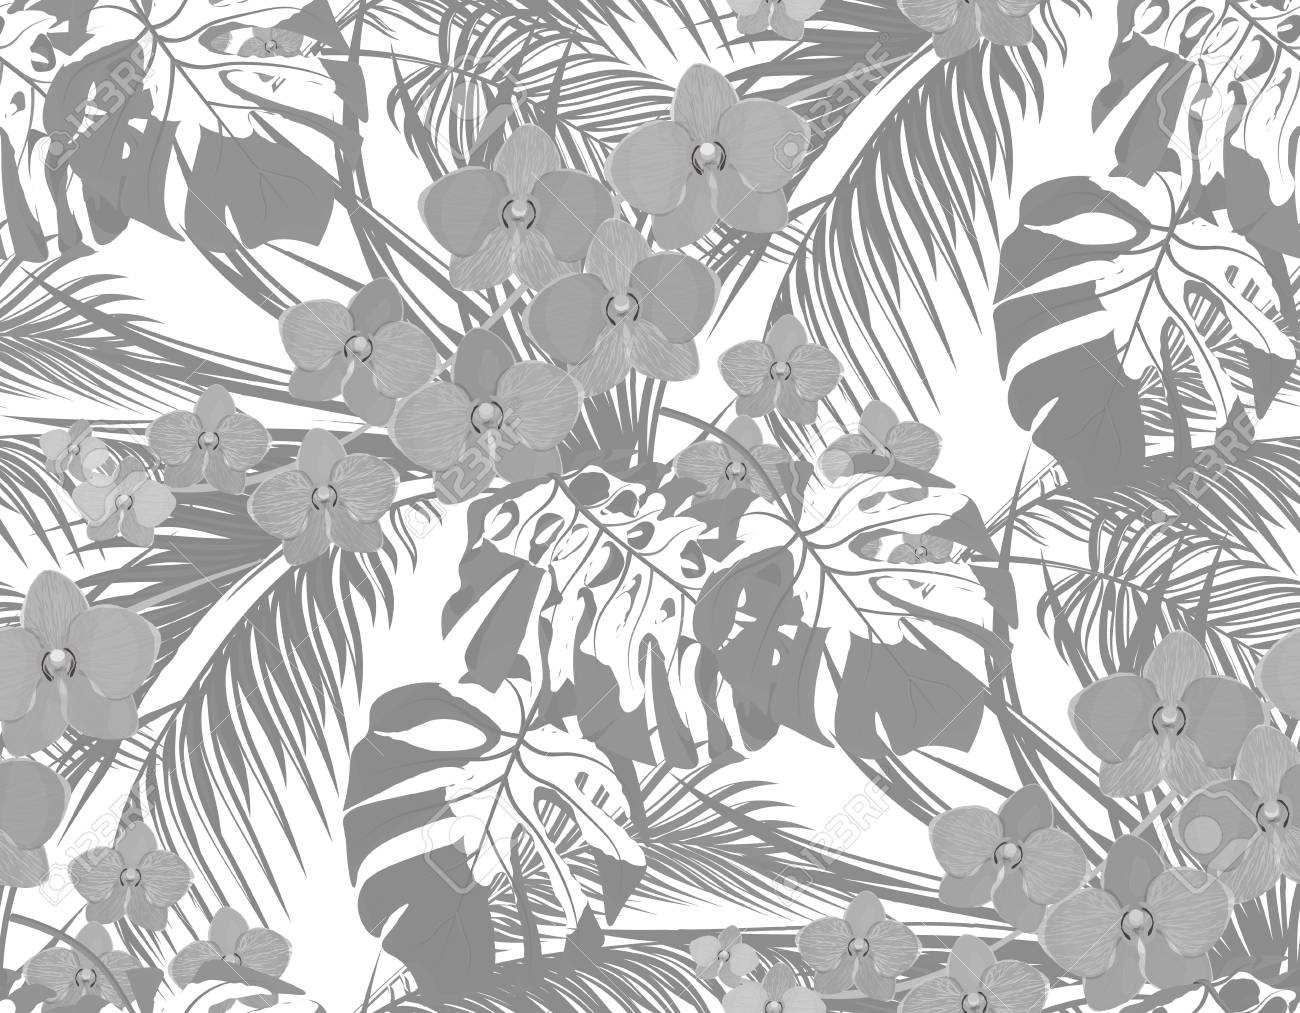 Illustration jungle black andwhite leaves of tropical palm trees monstera agaves and orchids drops of dew rain seamless isolated on white